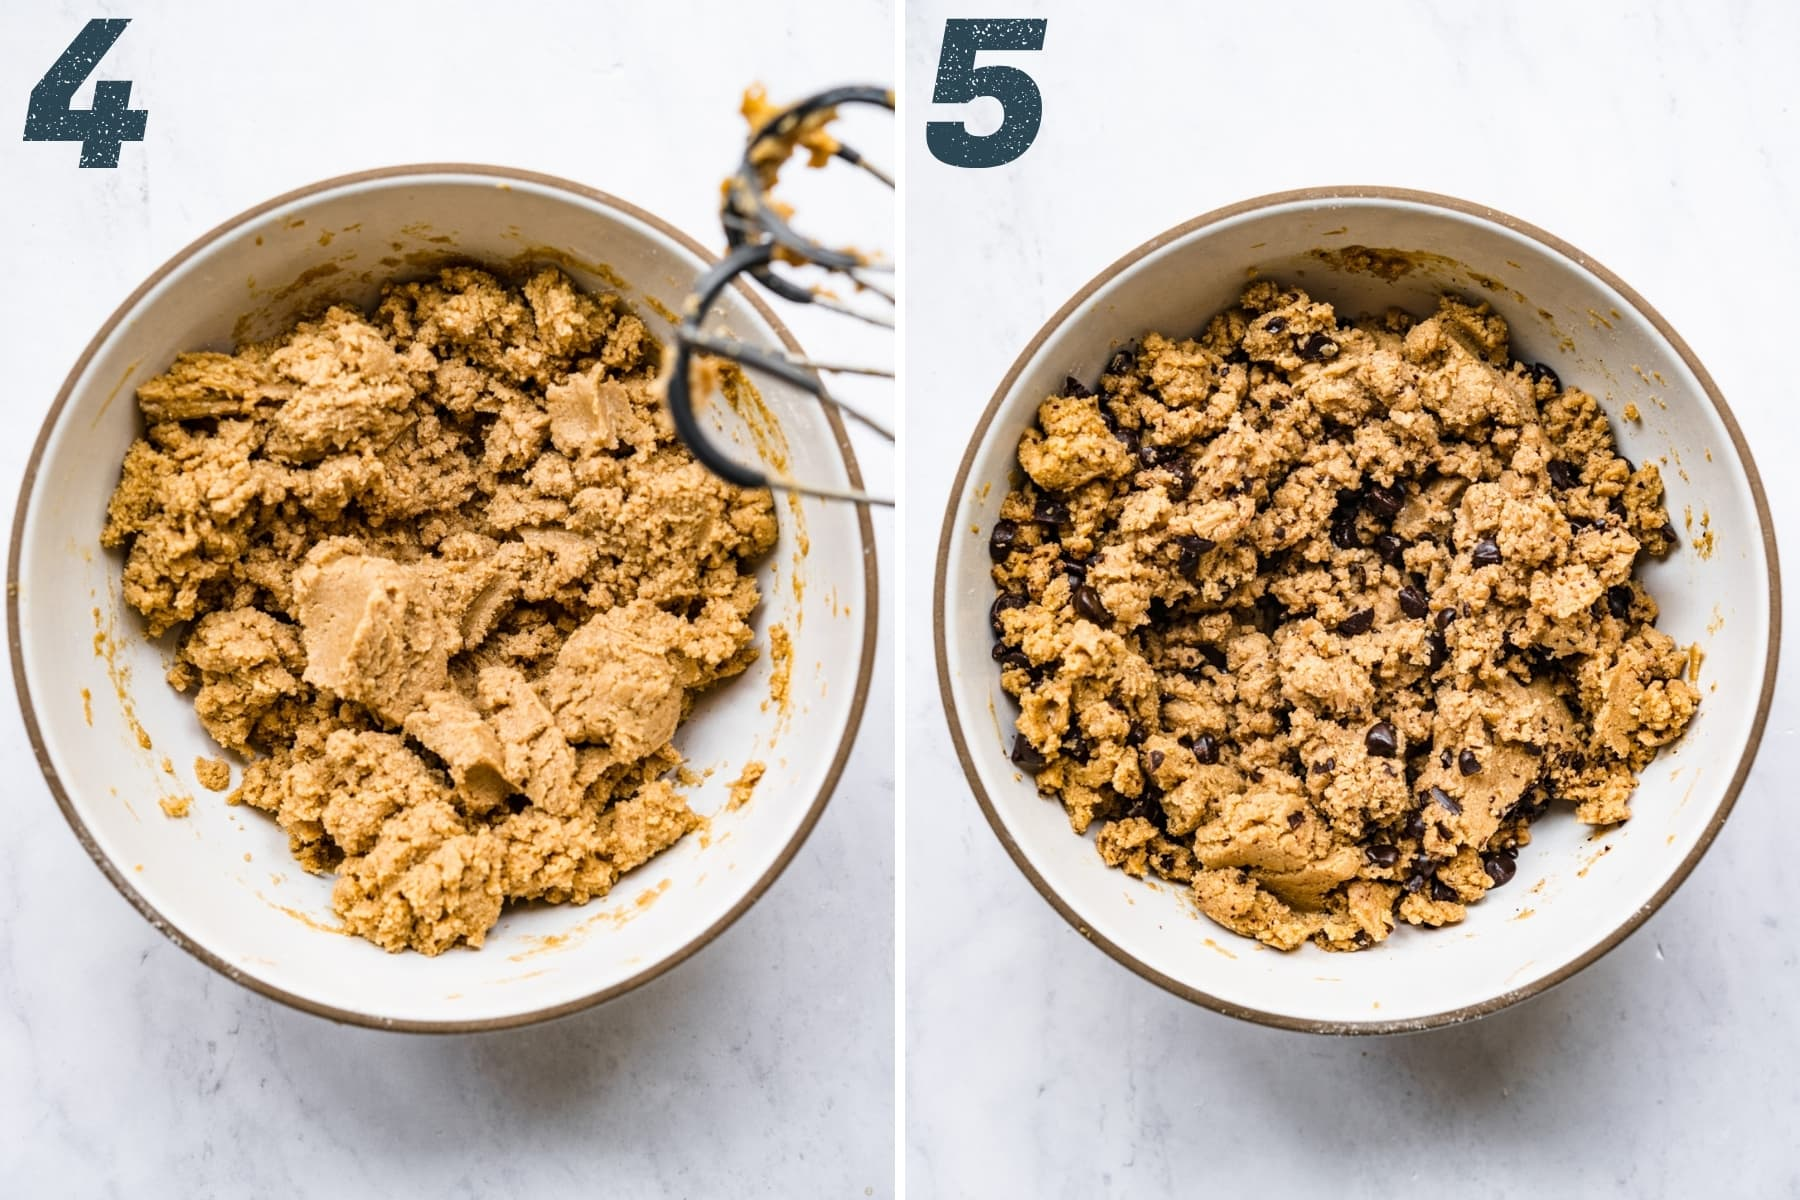 before and after adding chocolate chips to edible cookie dough batter.